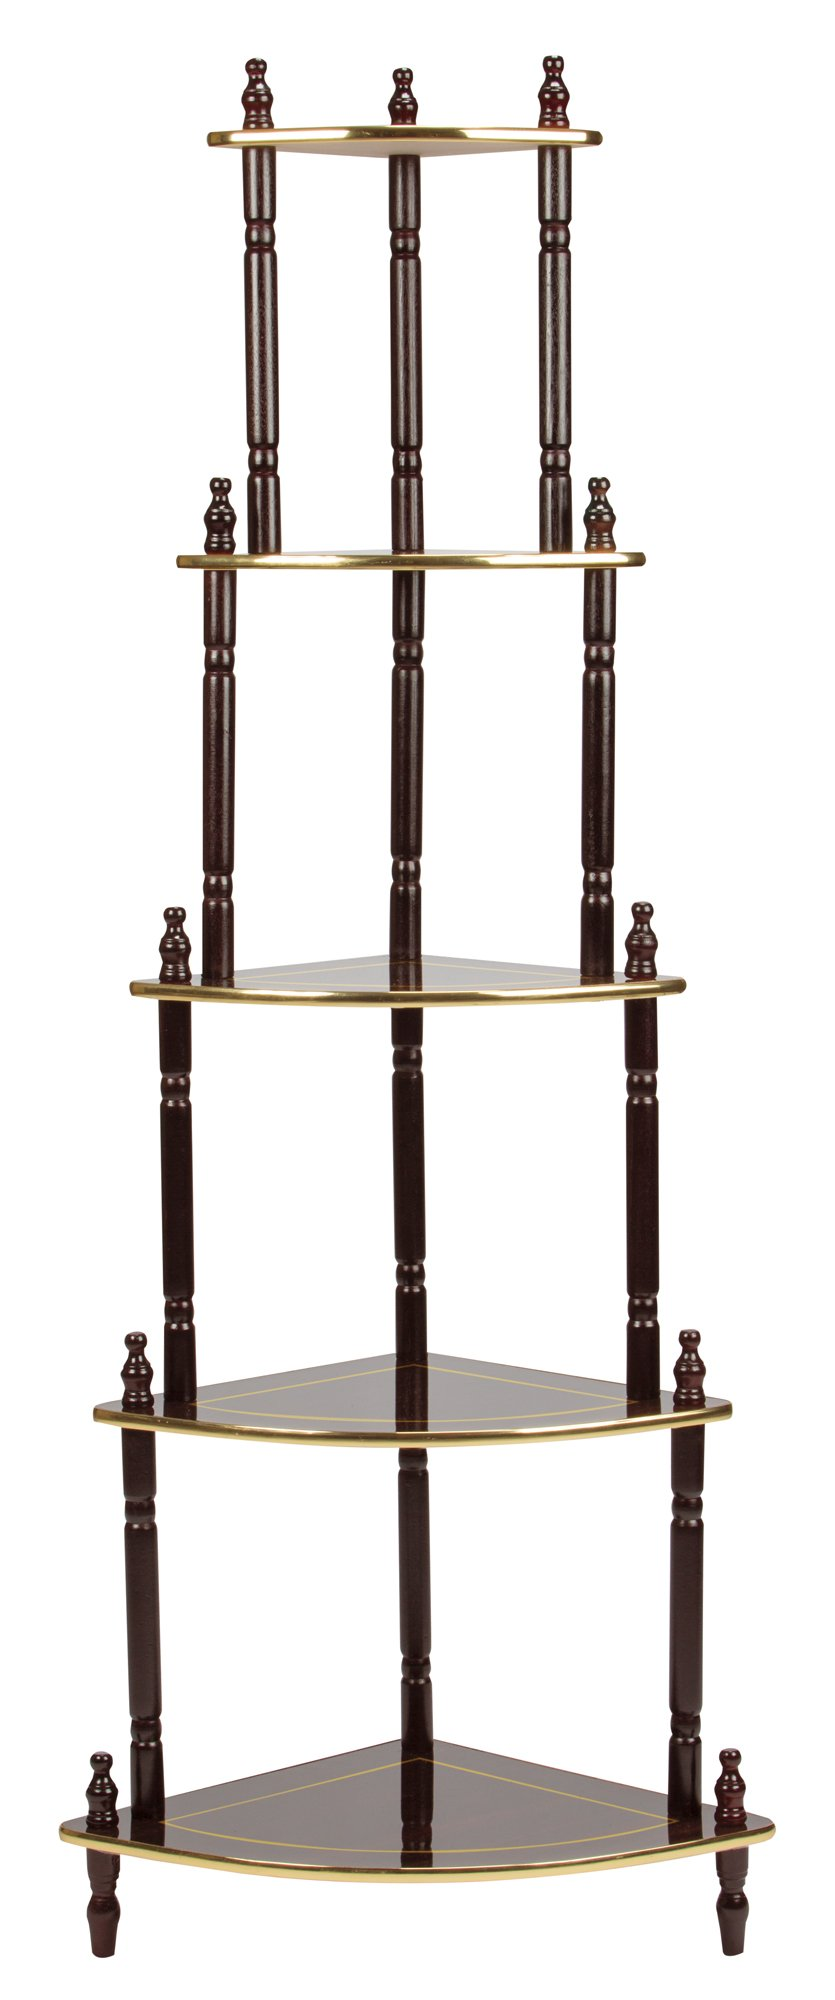 The Paragon Cherry Finish Corner Shelf Unit - Traditional 5 Tier Accent Etagere - Perfect to Fill Unusable Space by The Paragon